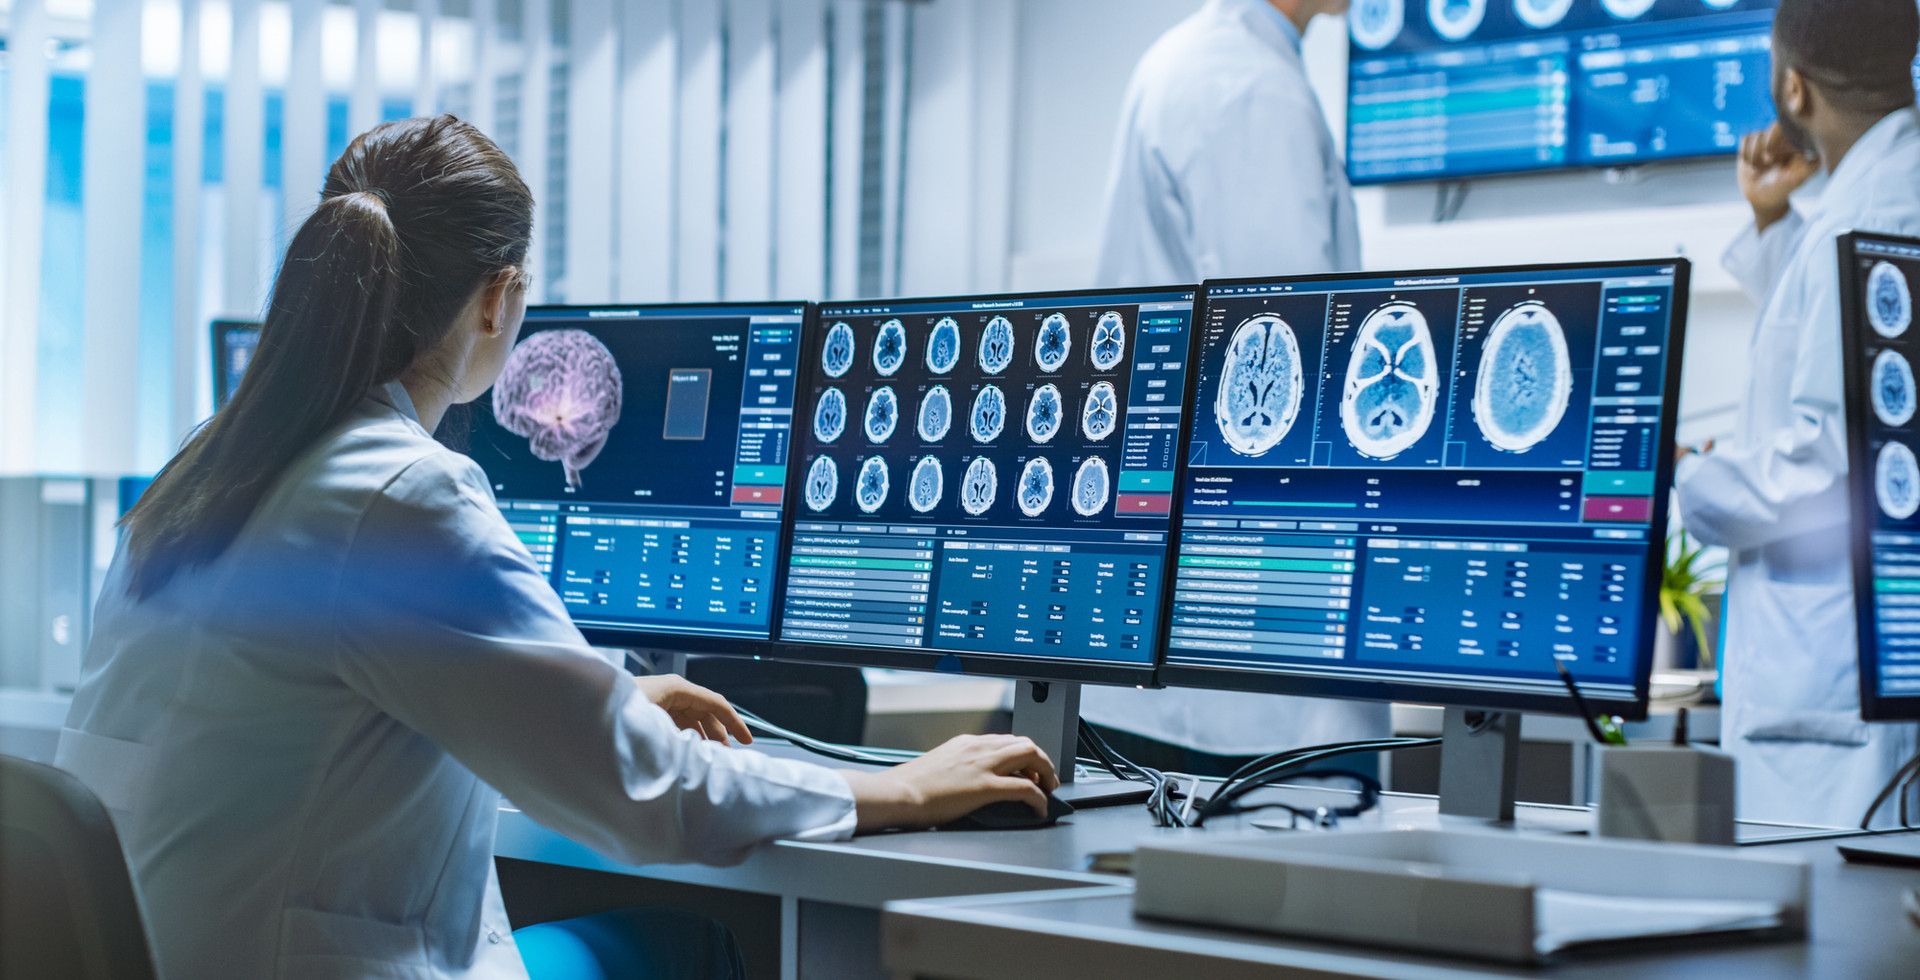 A Primer on Techniques and Technologies Used in Radiation Oncology